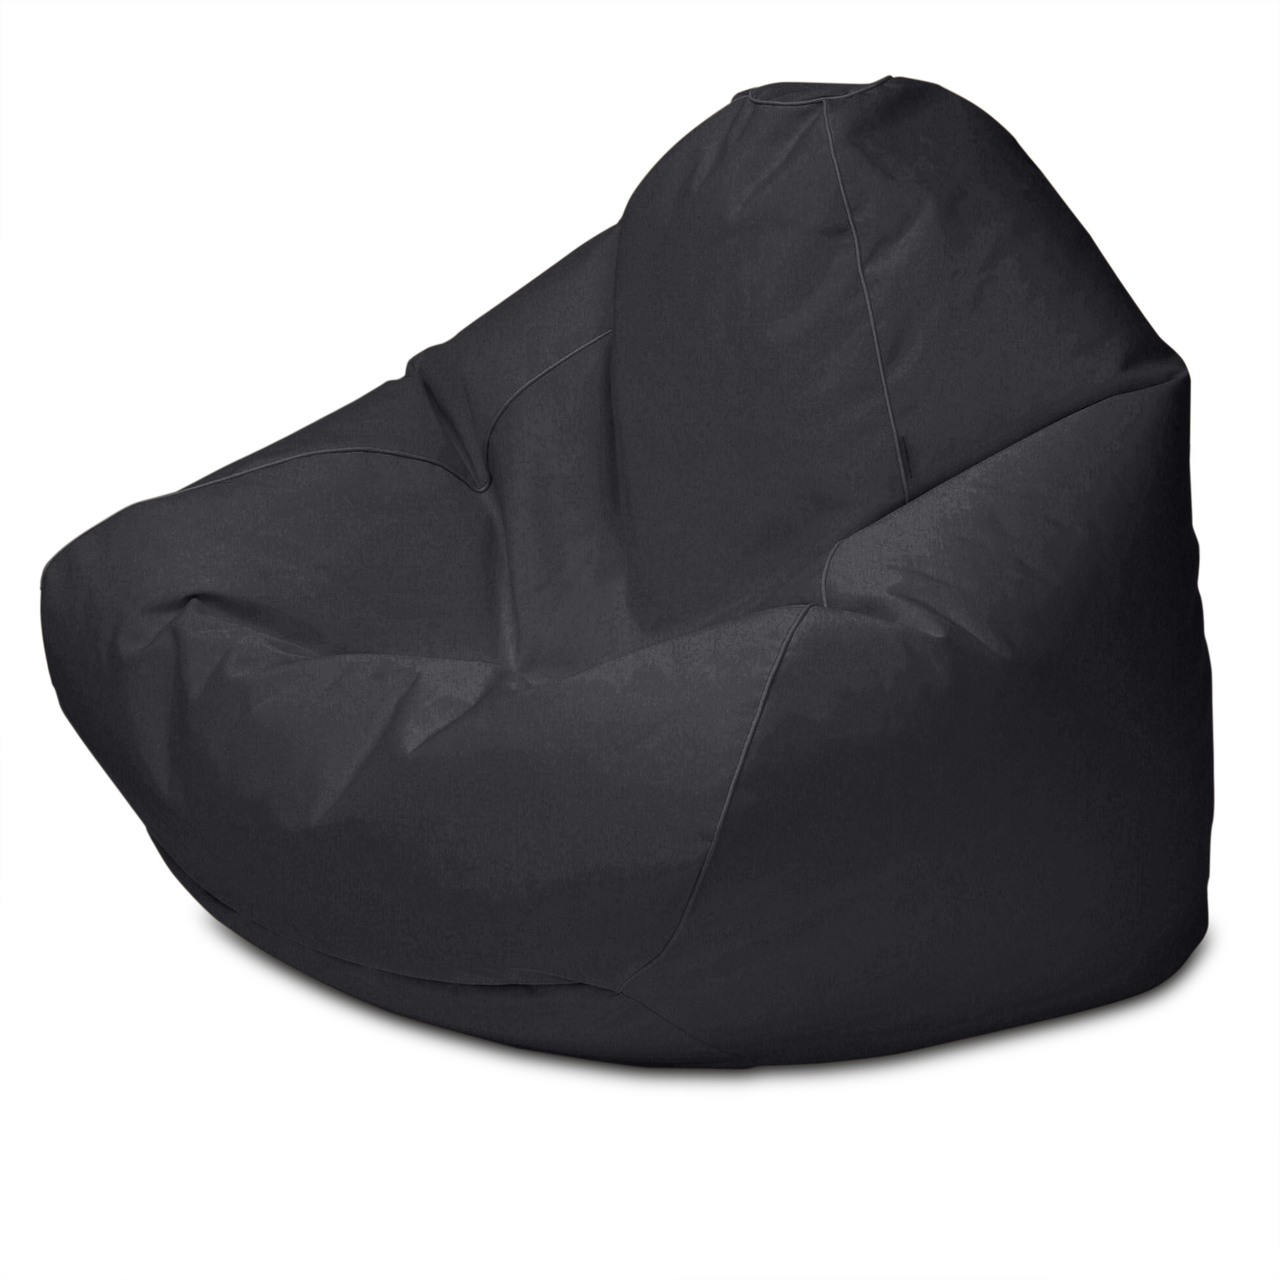 Sunbrella Outdoor Queen Size Bean Bag in black